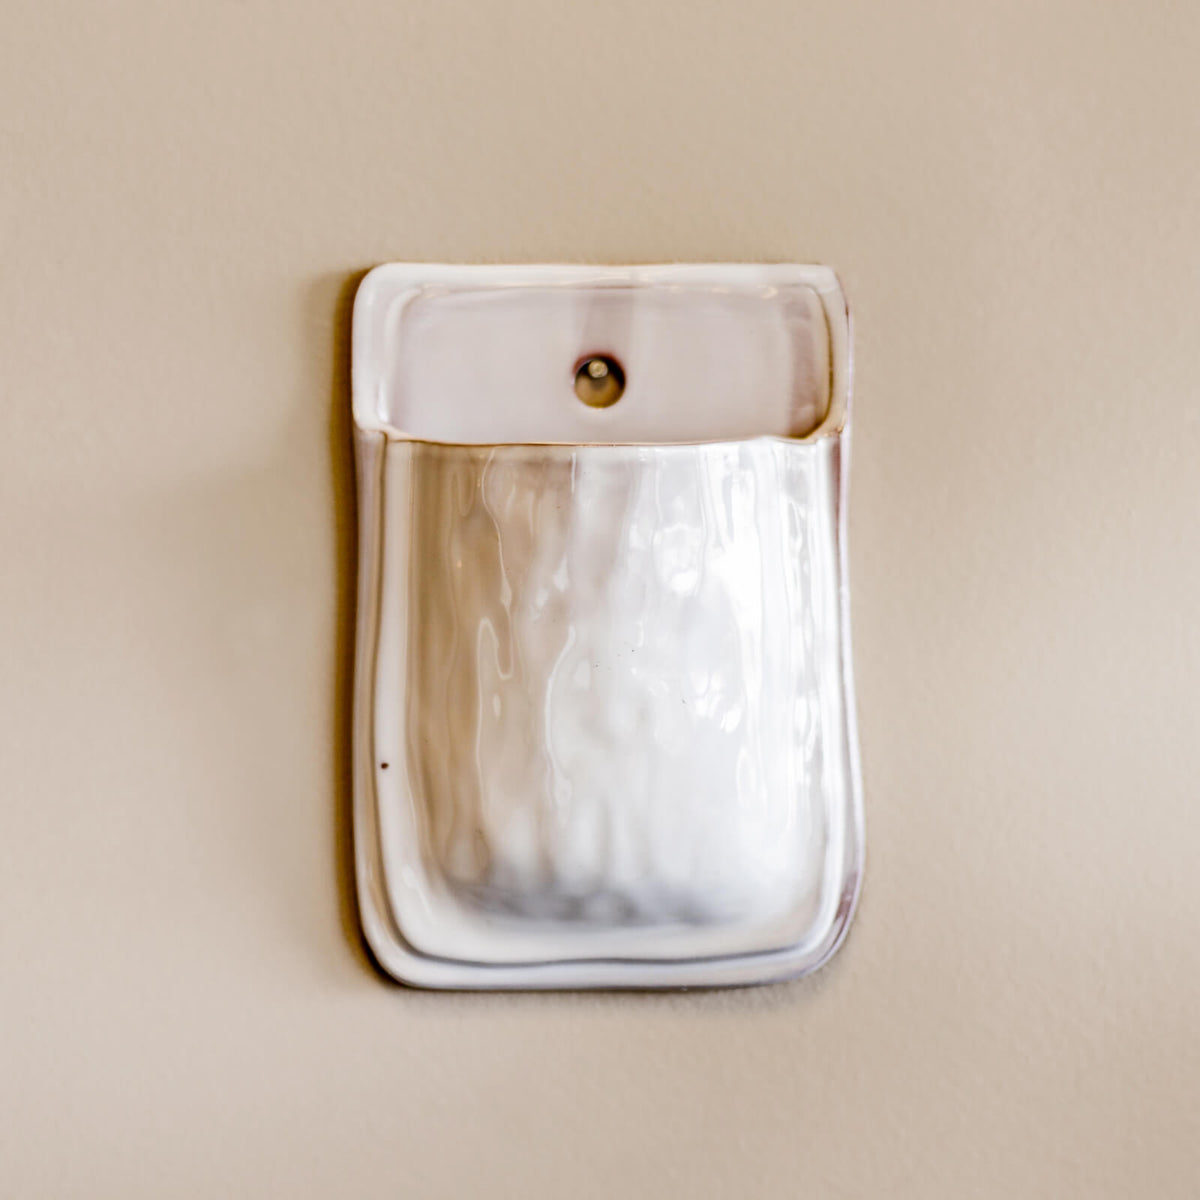 A terracotta pocket planter glazed in white hangs on a nail on a wall, ready for greenery in Topeka, Kansas